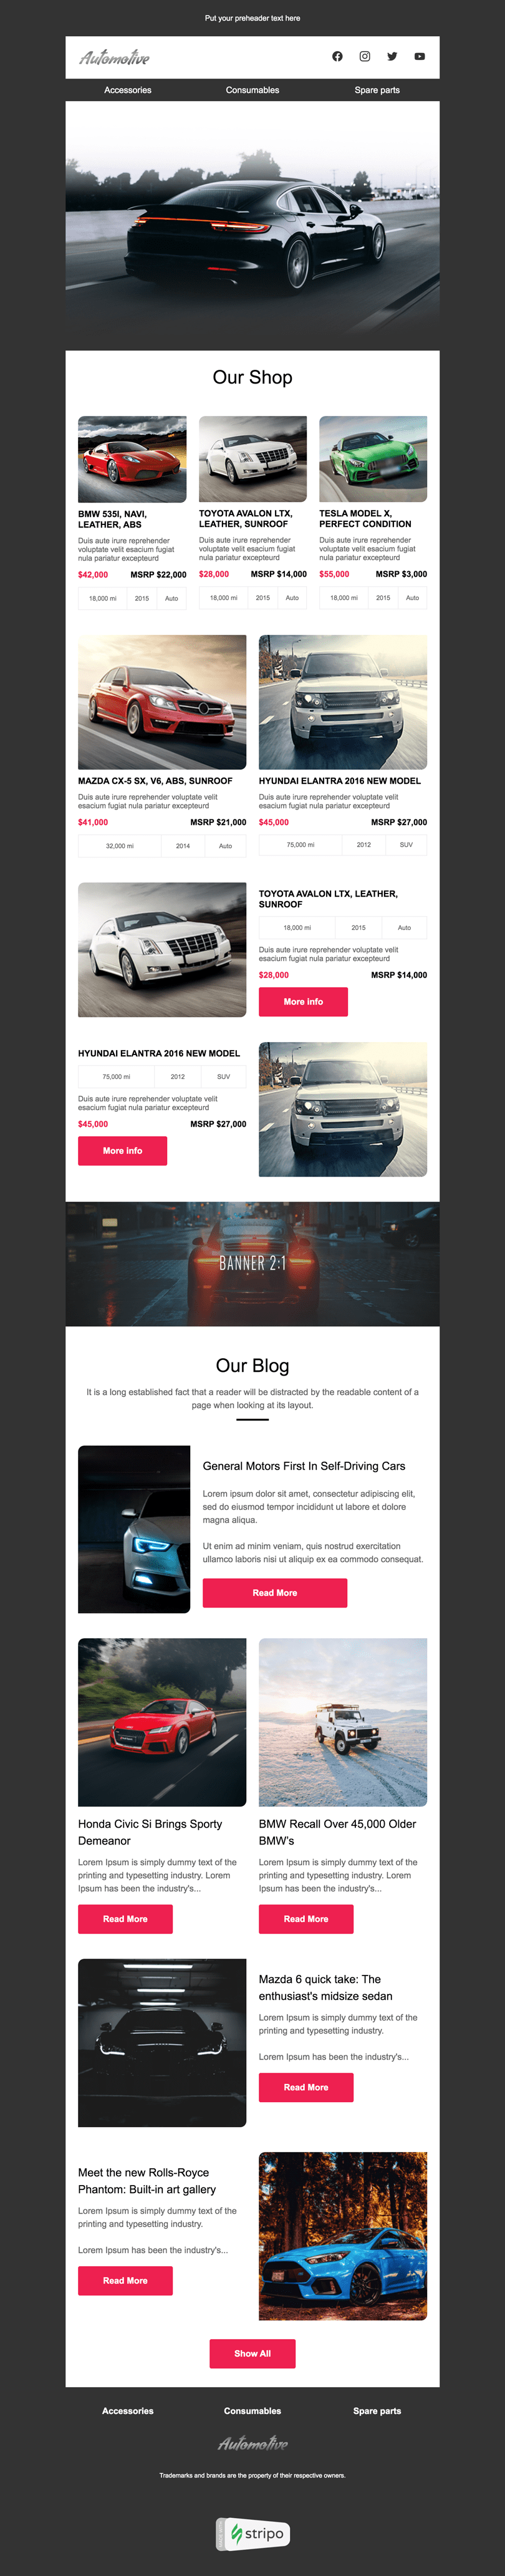 Promo Email Template «Long Road» for Auto & Moto industry desktop view